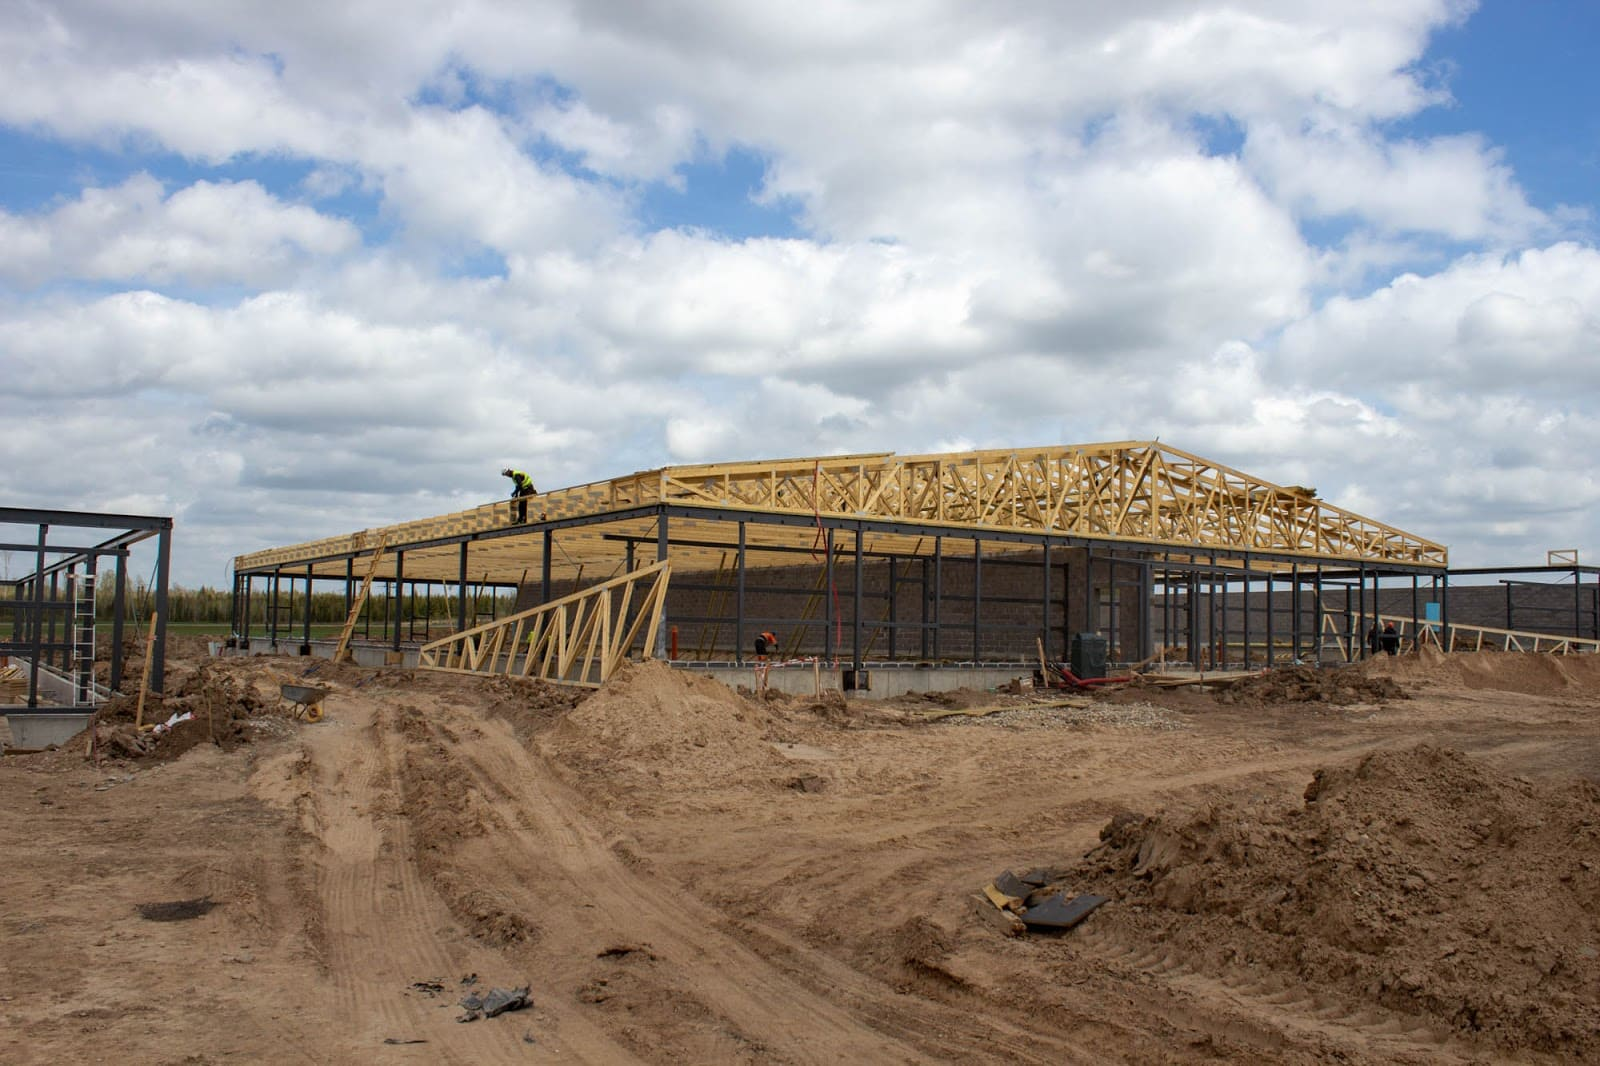 Wooden trusses for a livestock building in Latvia